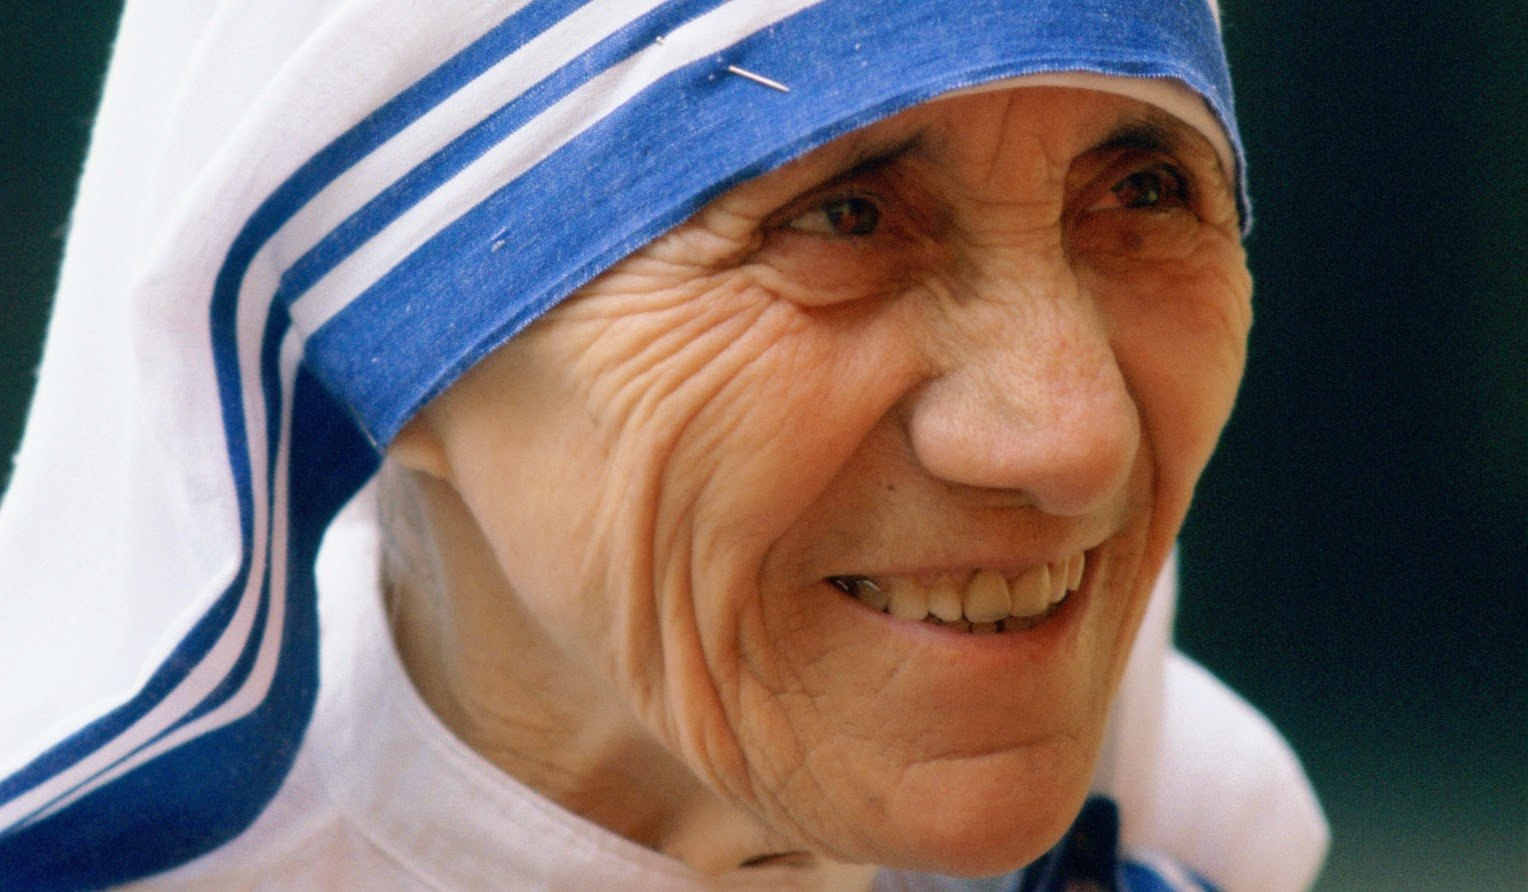 Mother-Teresa-2-b4eb1d.jpg